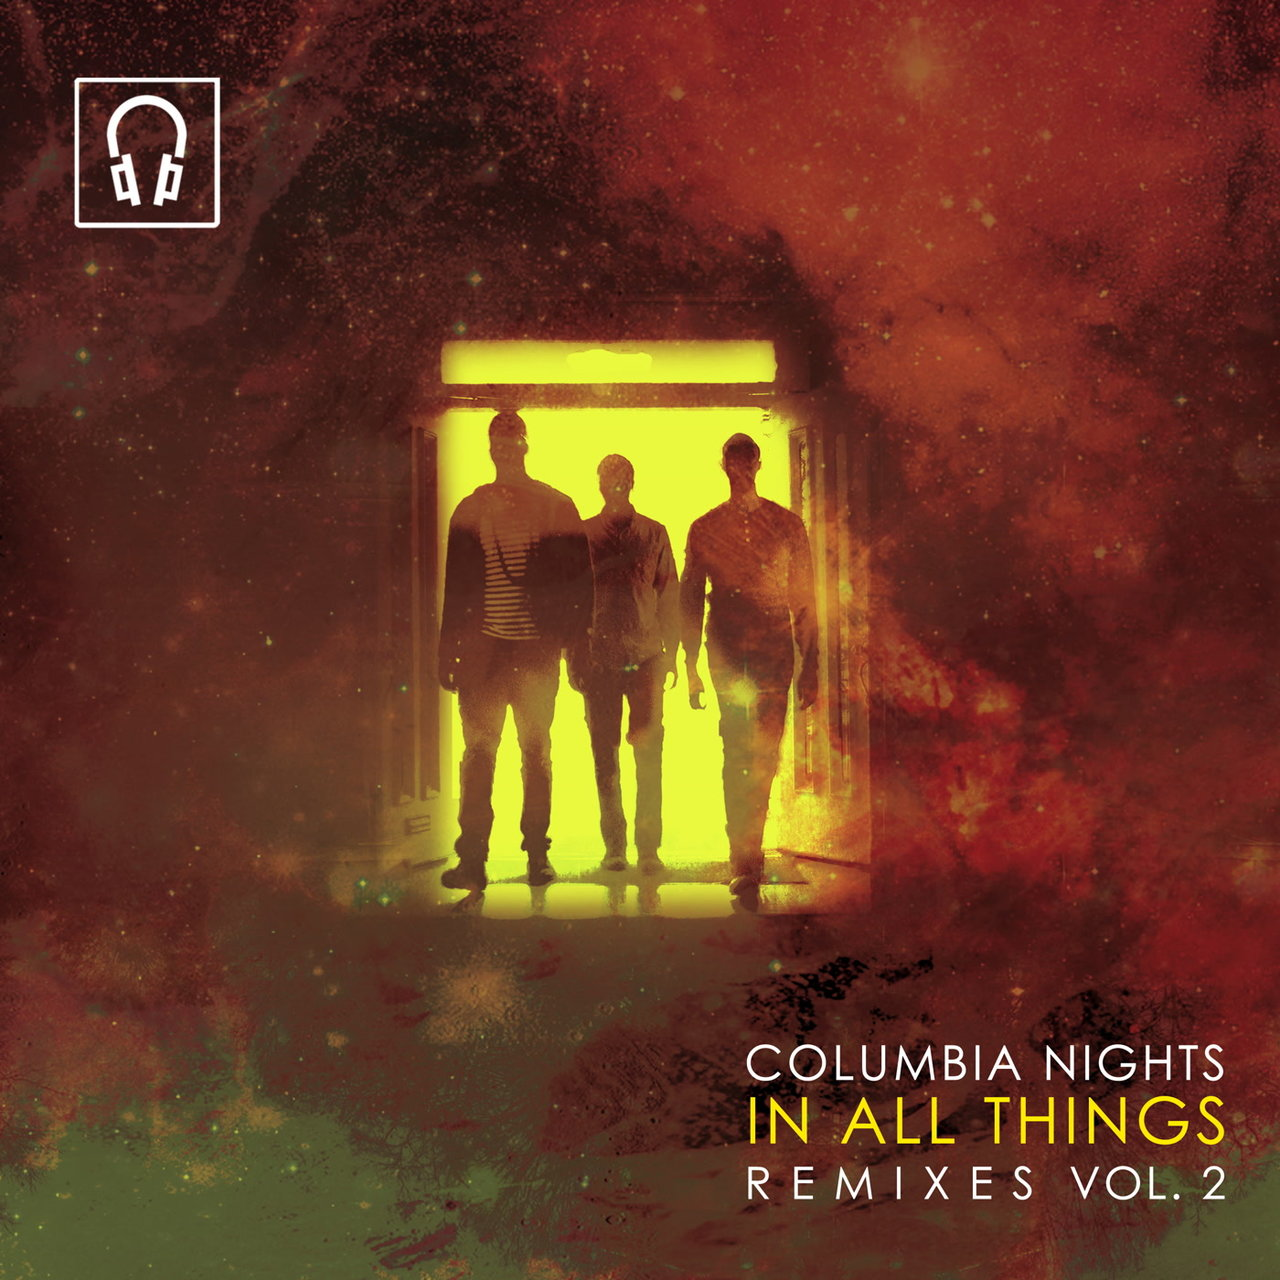 In All Things Remixes, Vol. 2